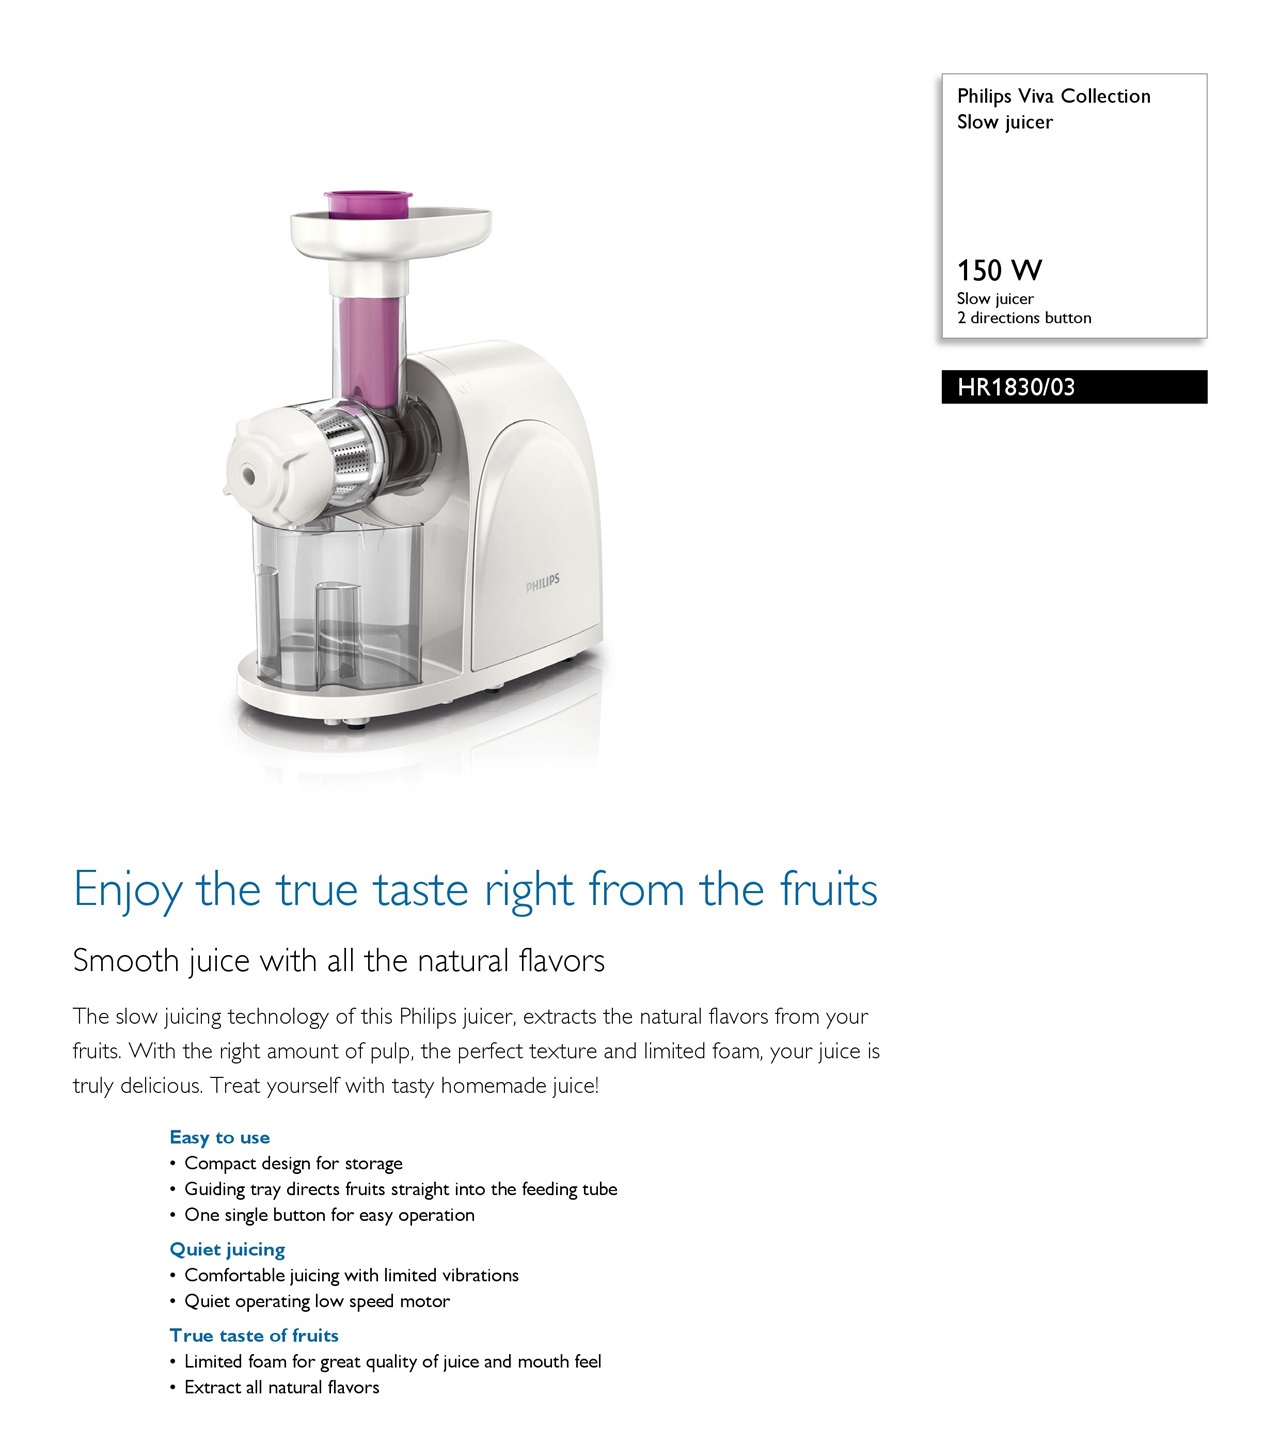 Philips Slow Juicer Hr1830 Review : ET SOUND ENTERPRISE PTE LTD. Philips viva Collection Slow Juicer HR1830